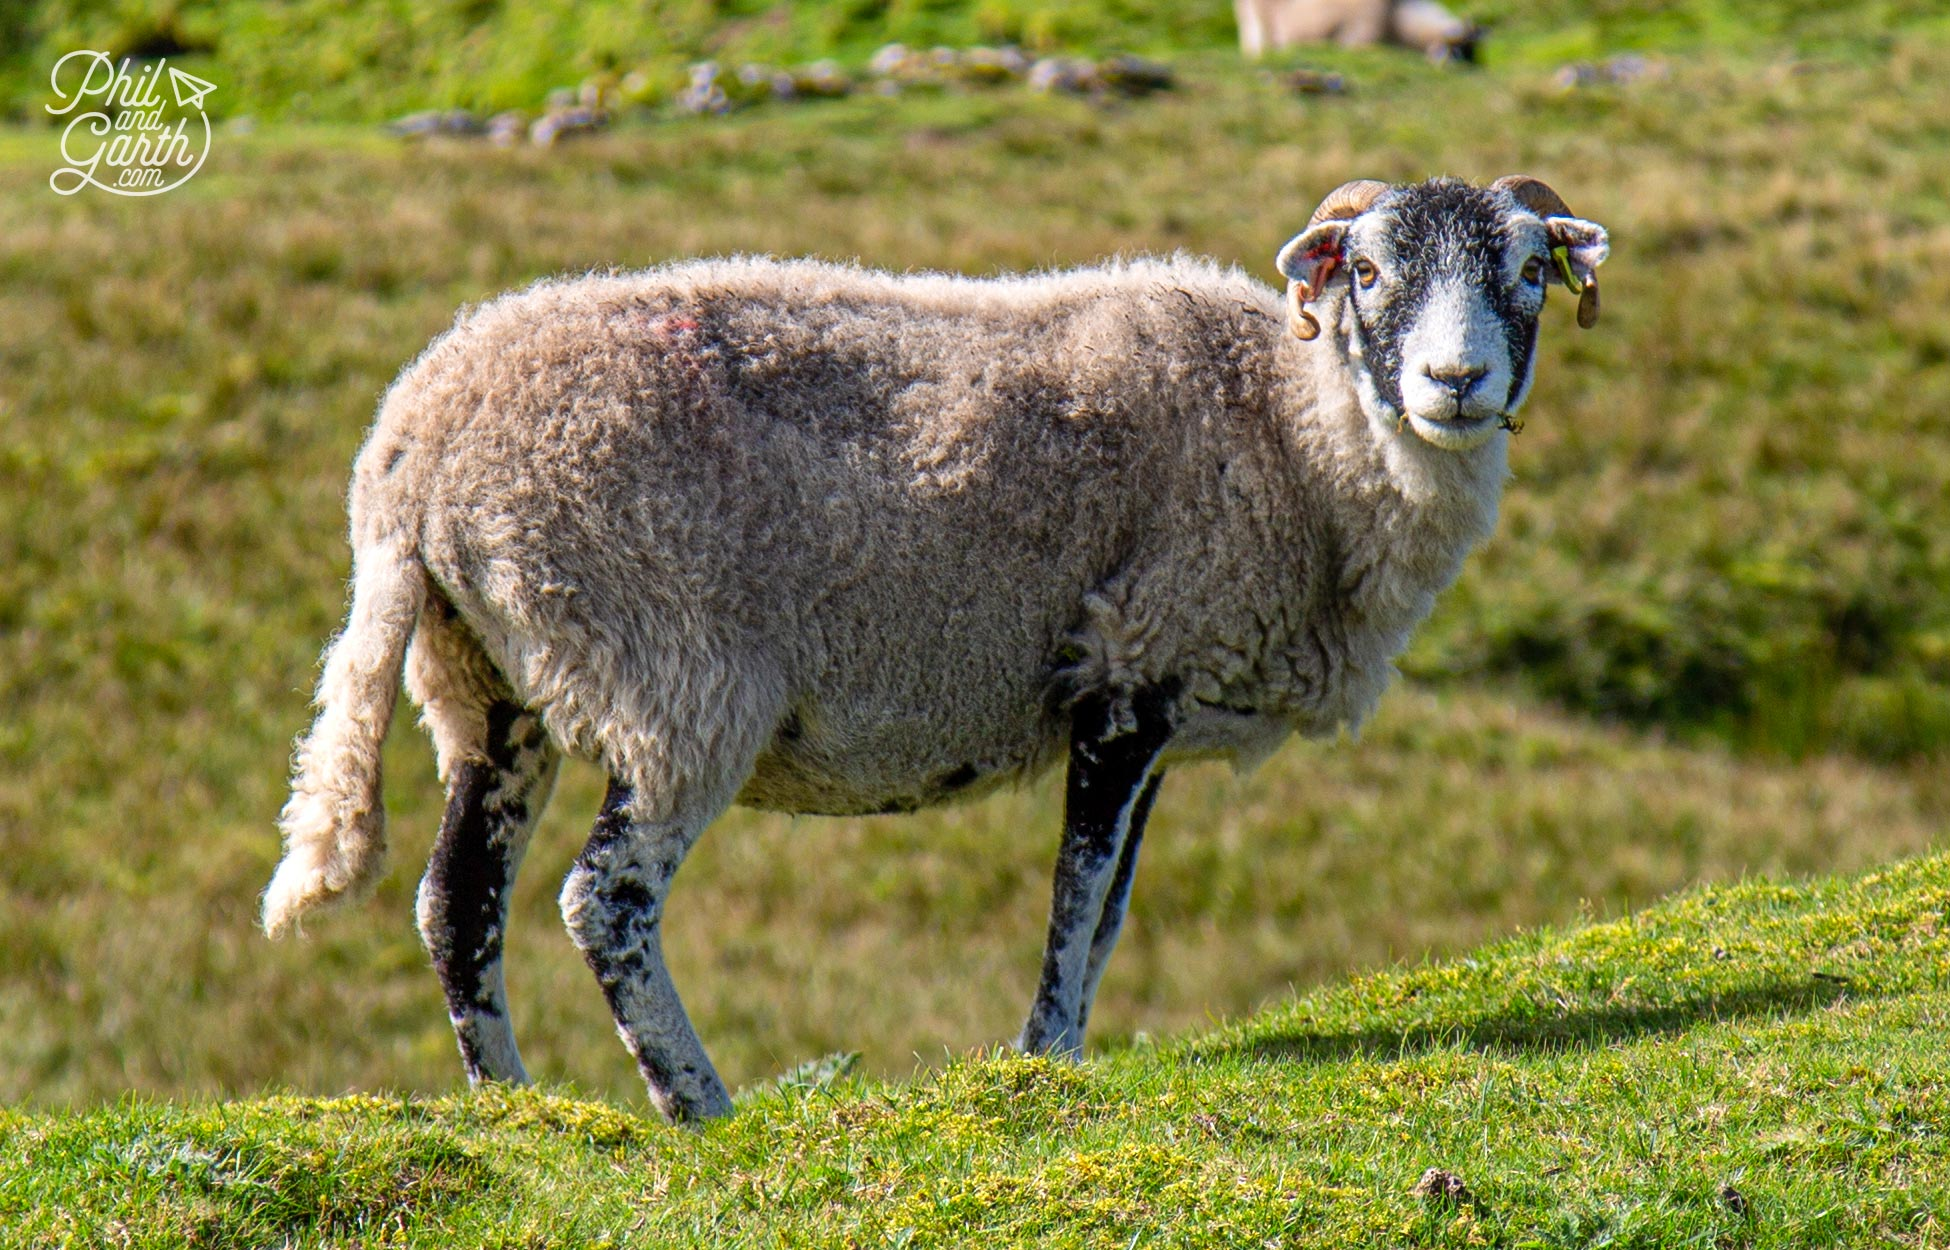 Swaledale sheep are known for their hardiness in exposed places